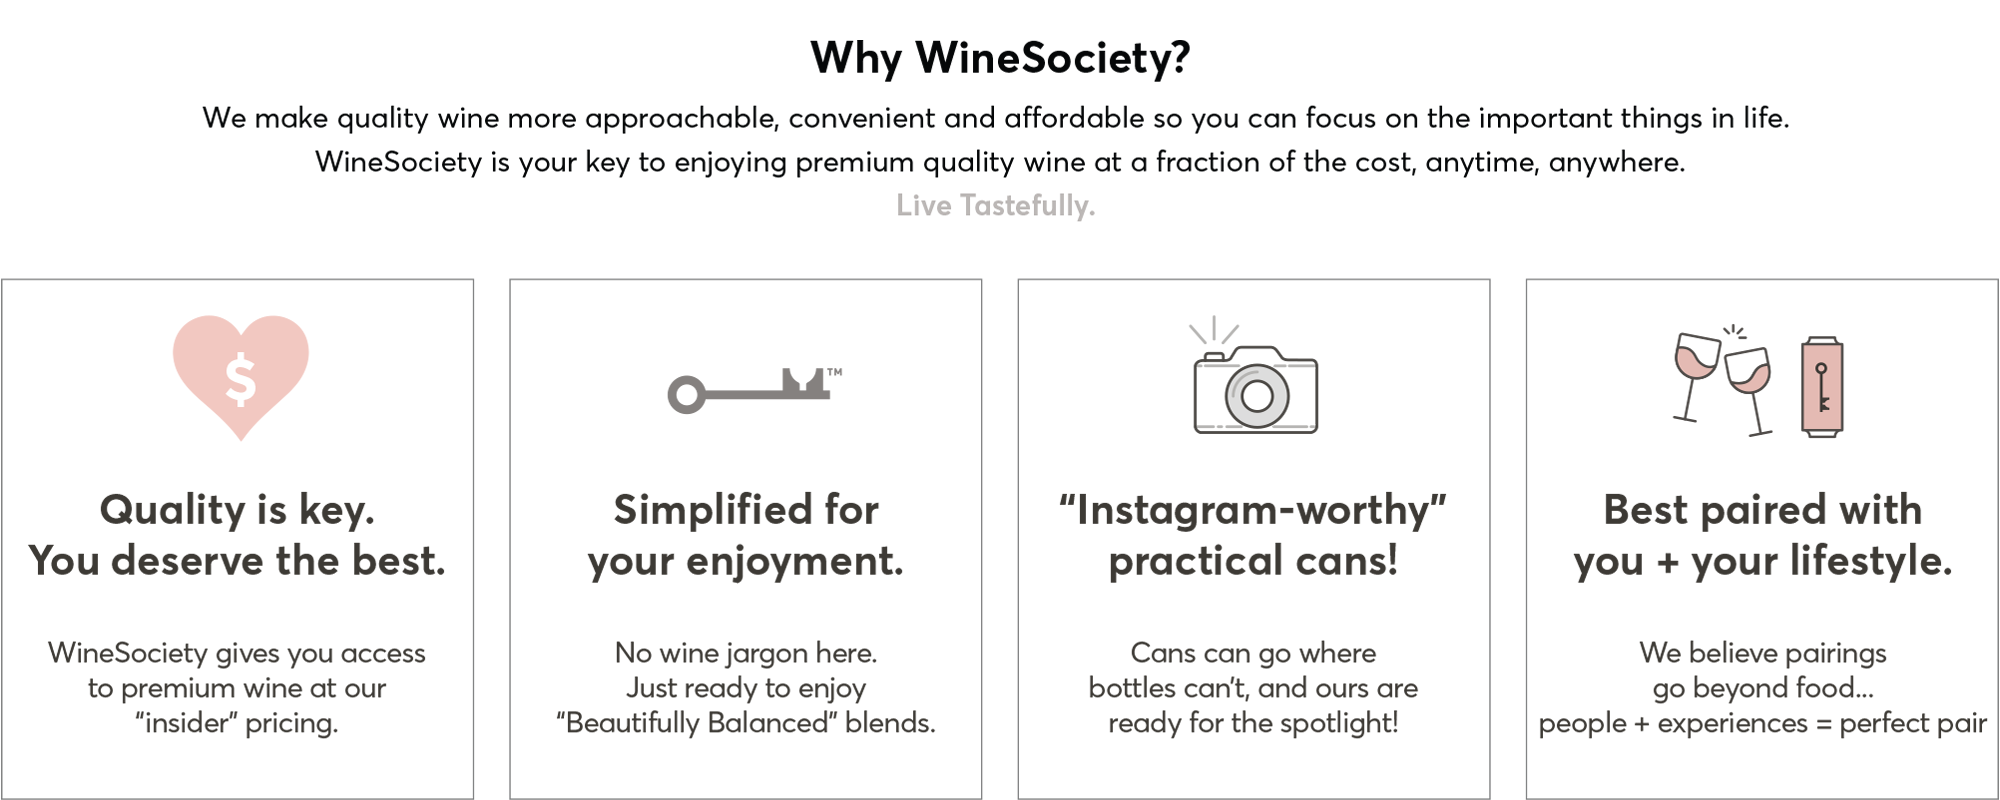 Why WineSociety